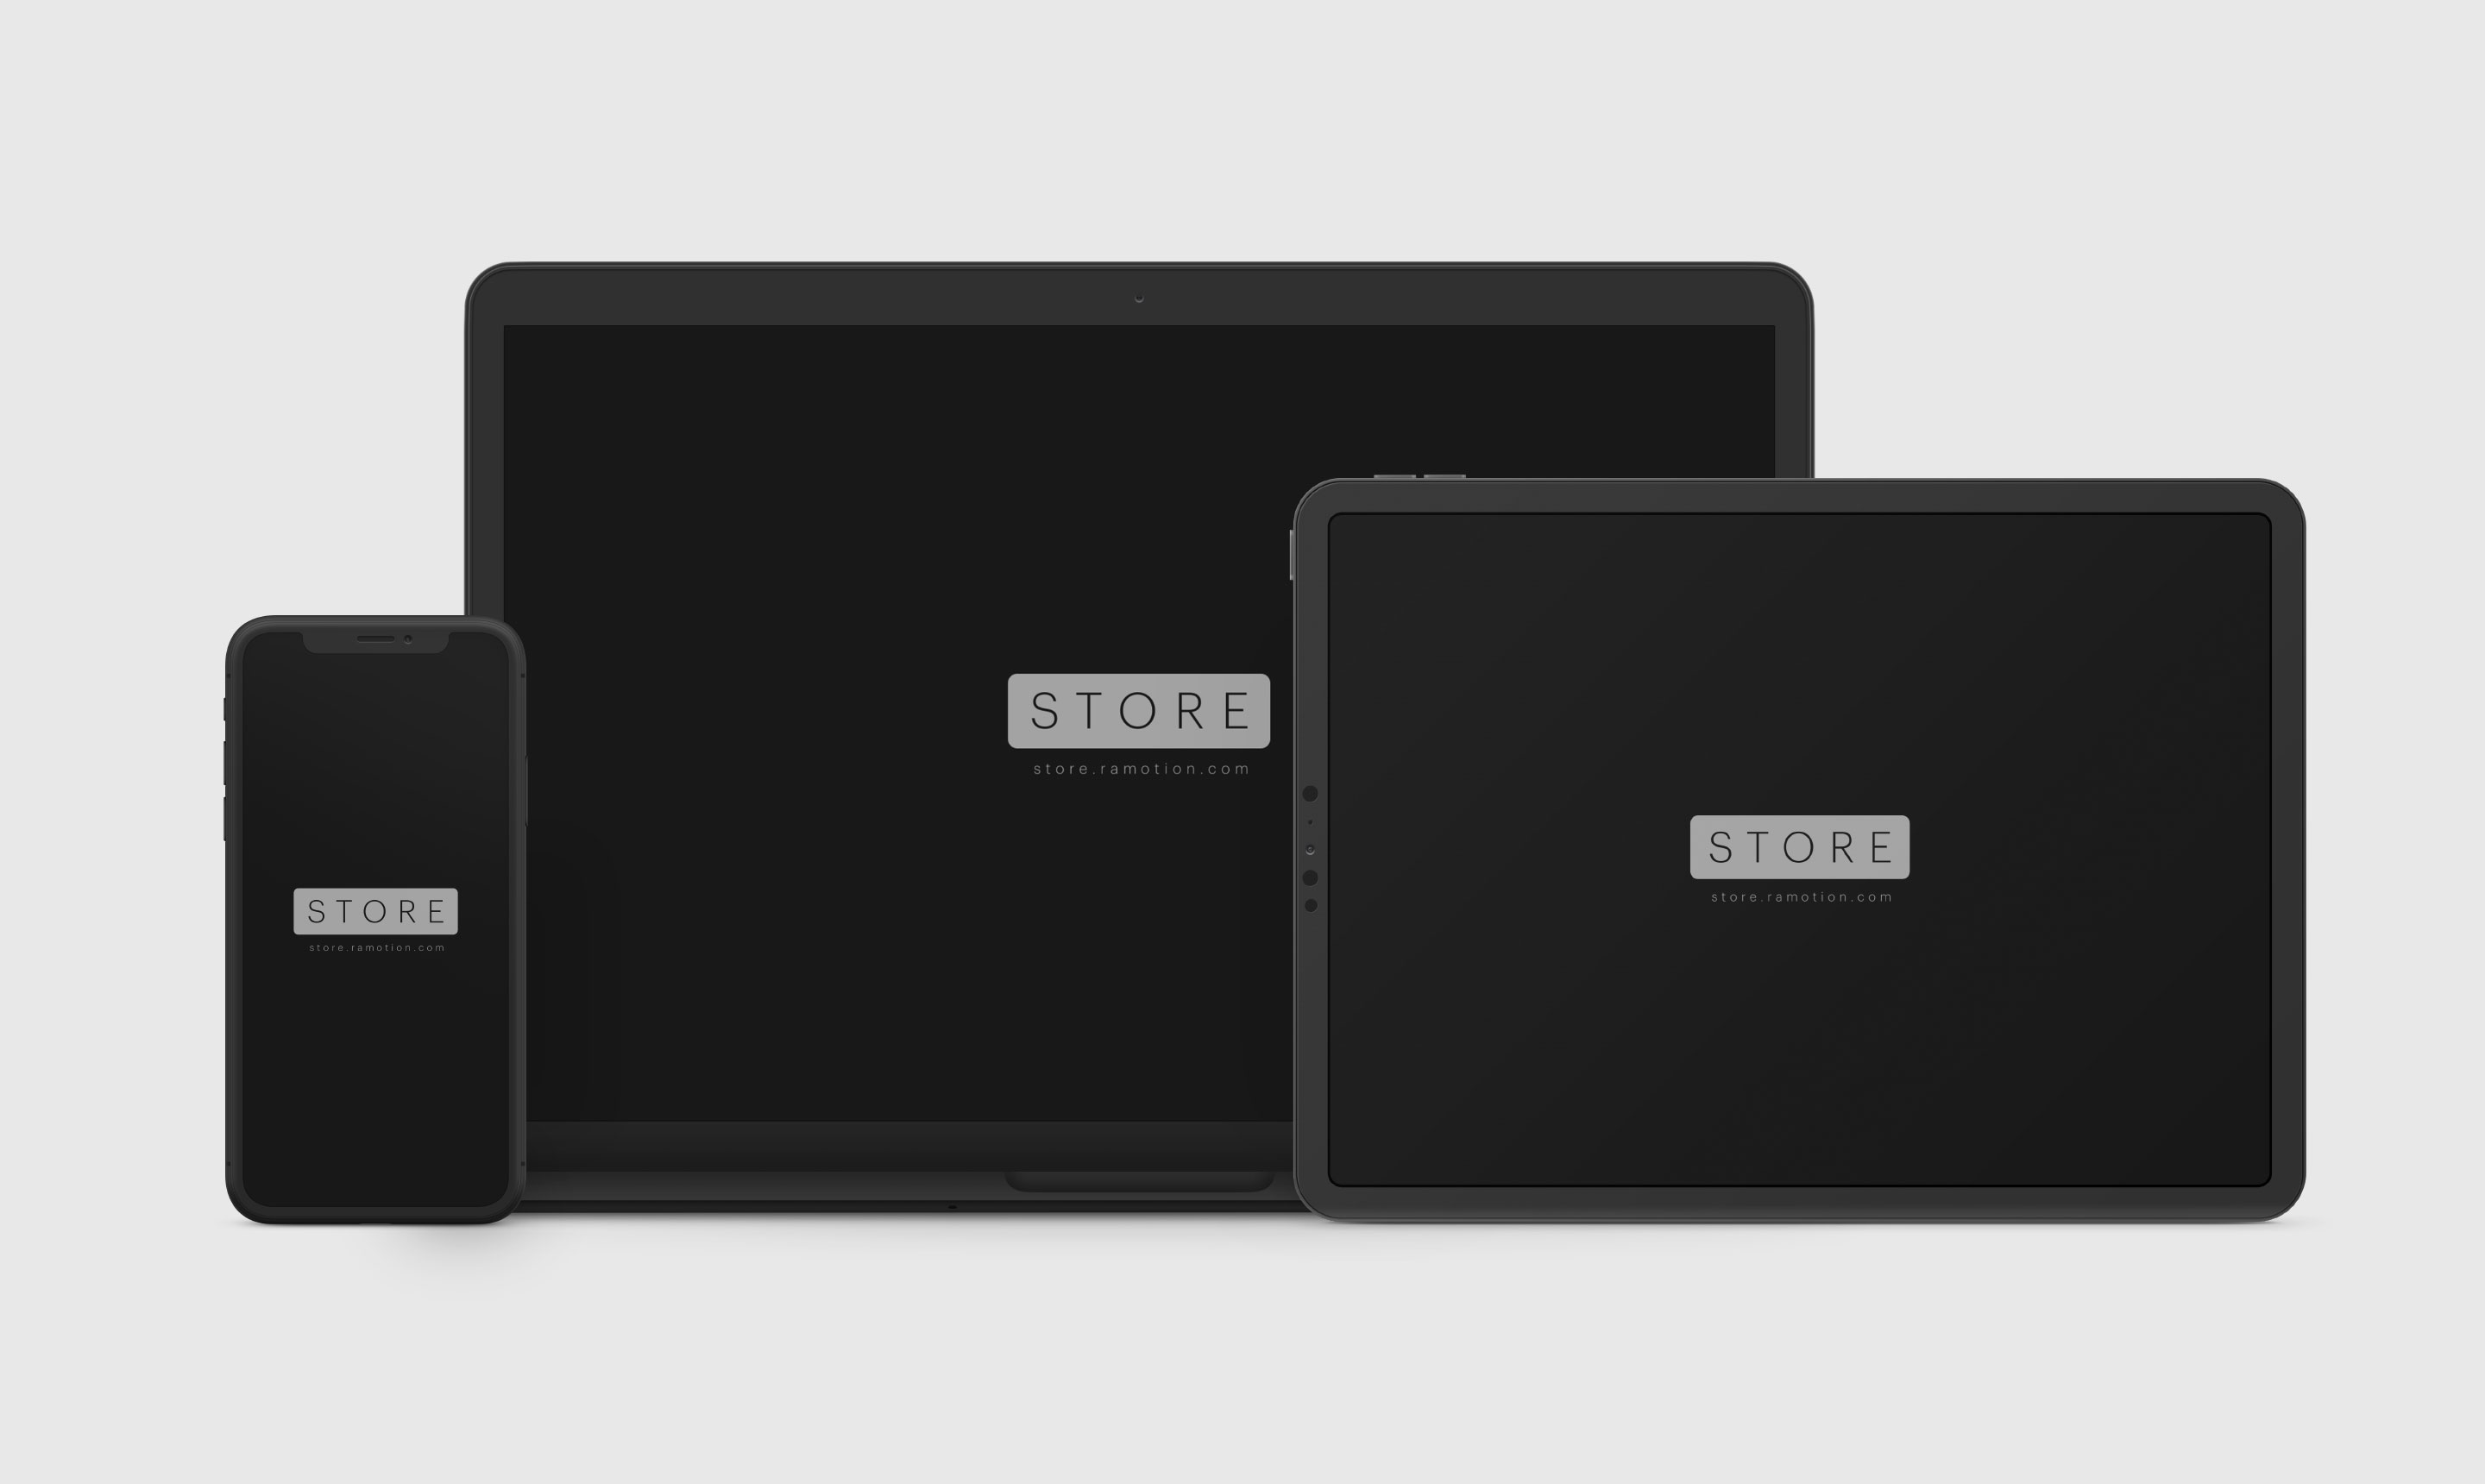 iPhone-Macbook-Frontal-iPad-Landscape-Clay-Black-Mockup-sketch